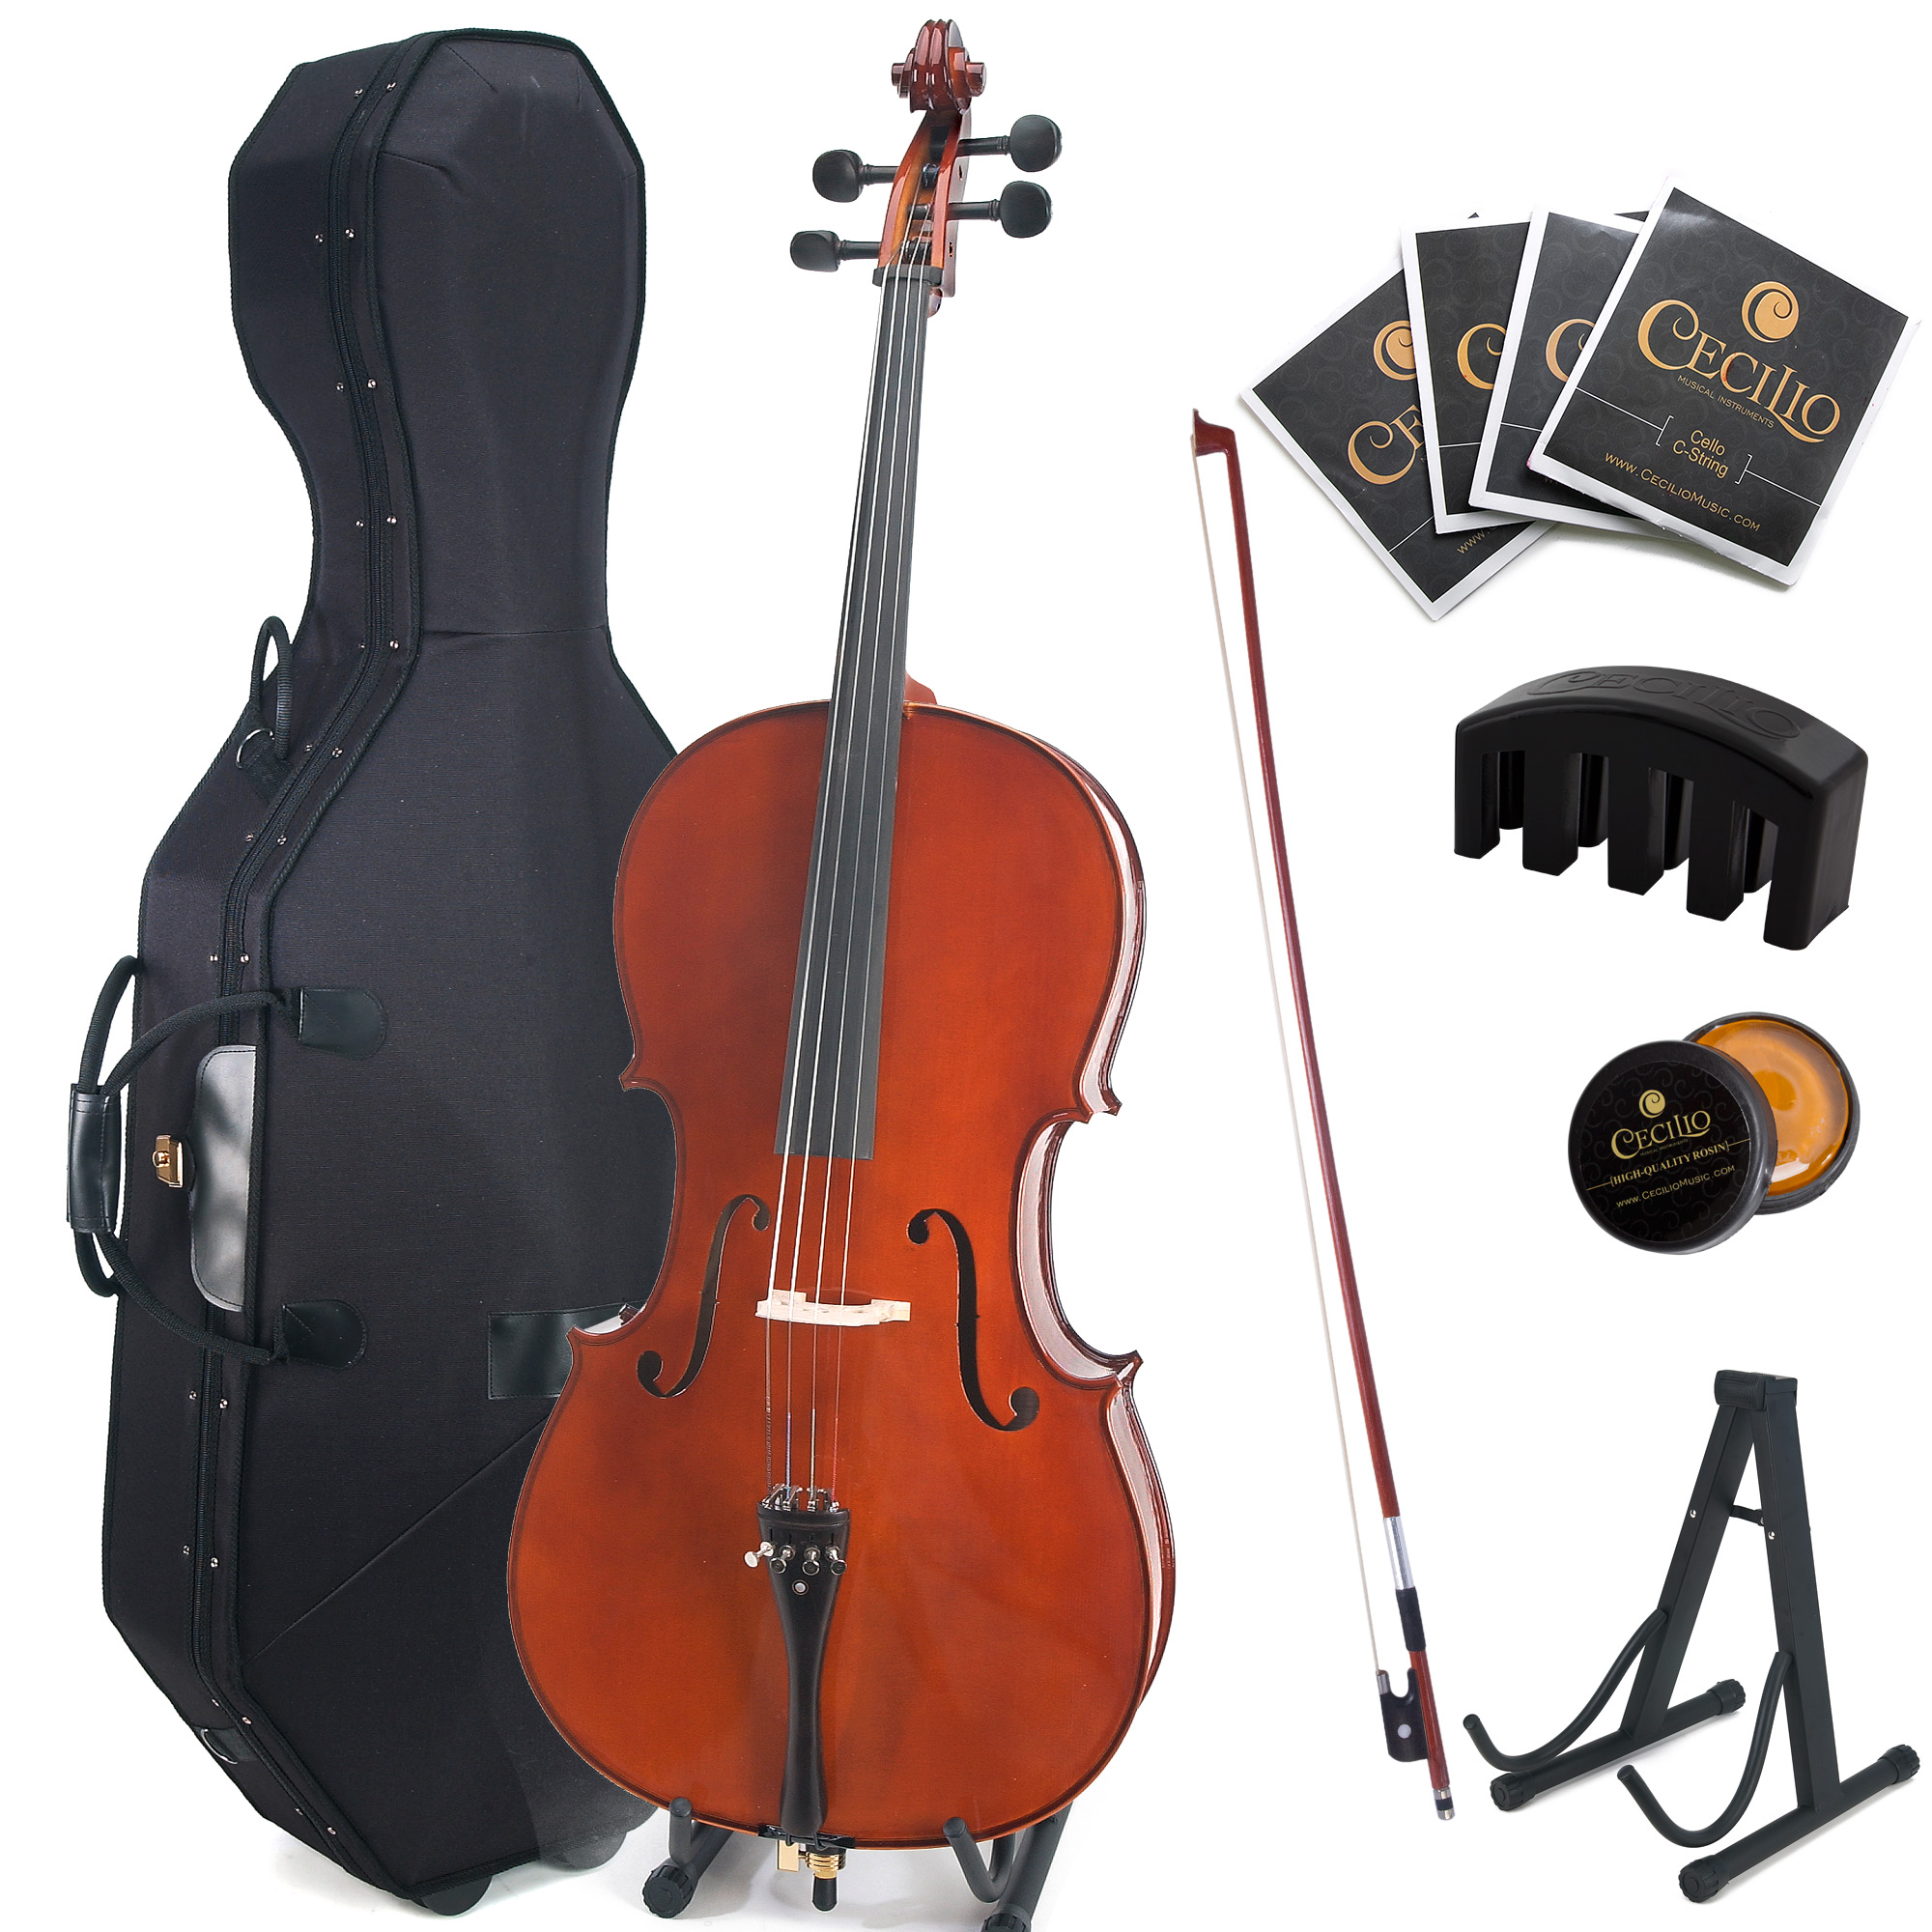 Cecilio CCO-500 Ebony Fitted Flamed Solid Wood Cello with Hard and Soft Case, Cello Stand, Extra Strings, Bow, Rosin, Cello Mute and Bridge, Full Size 4/4